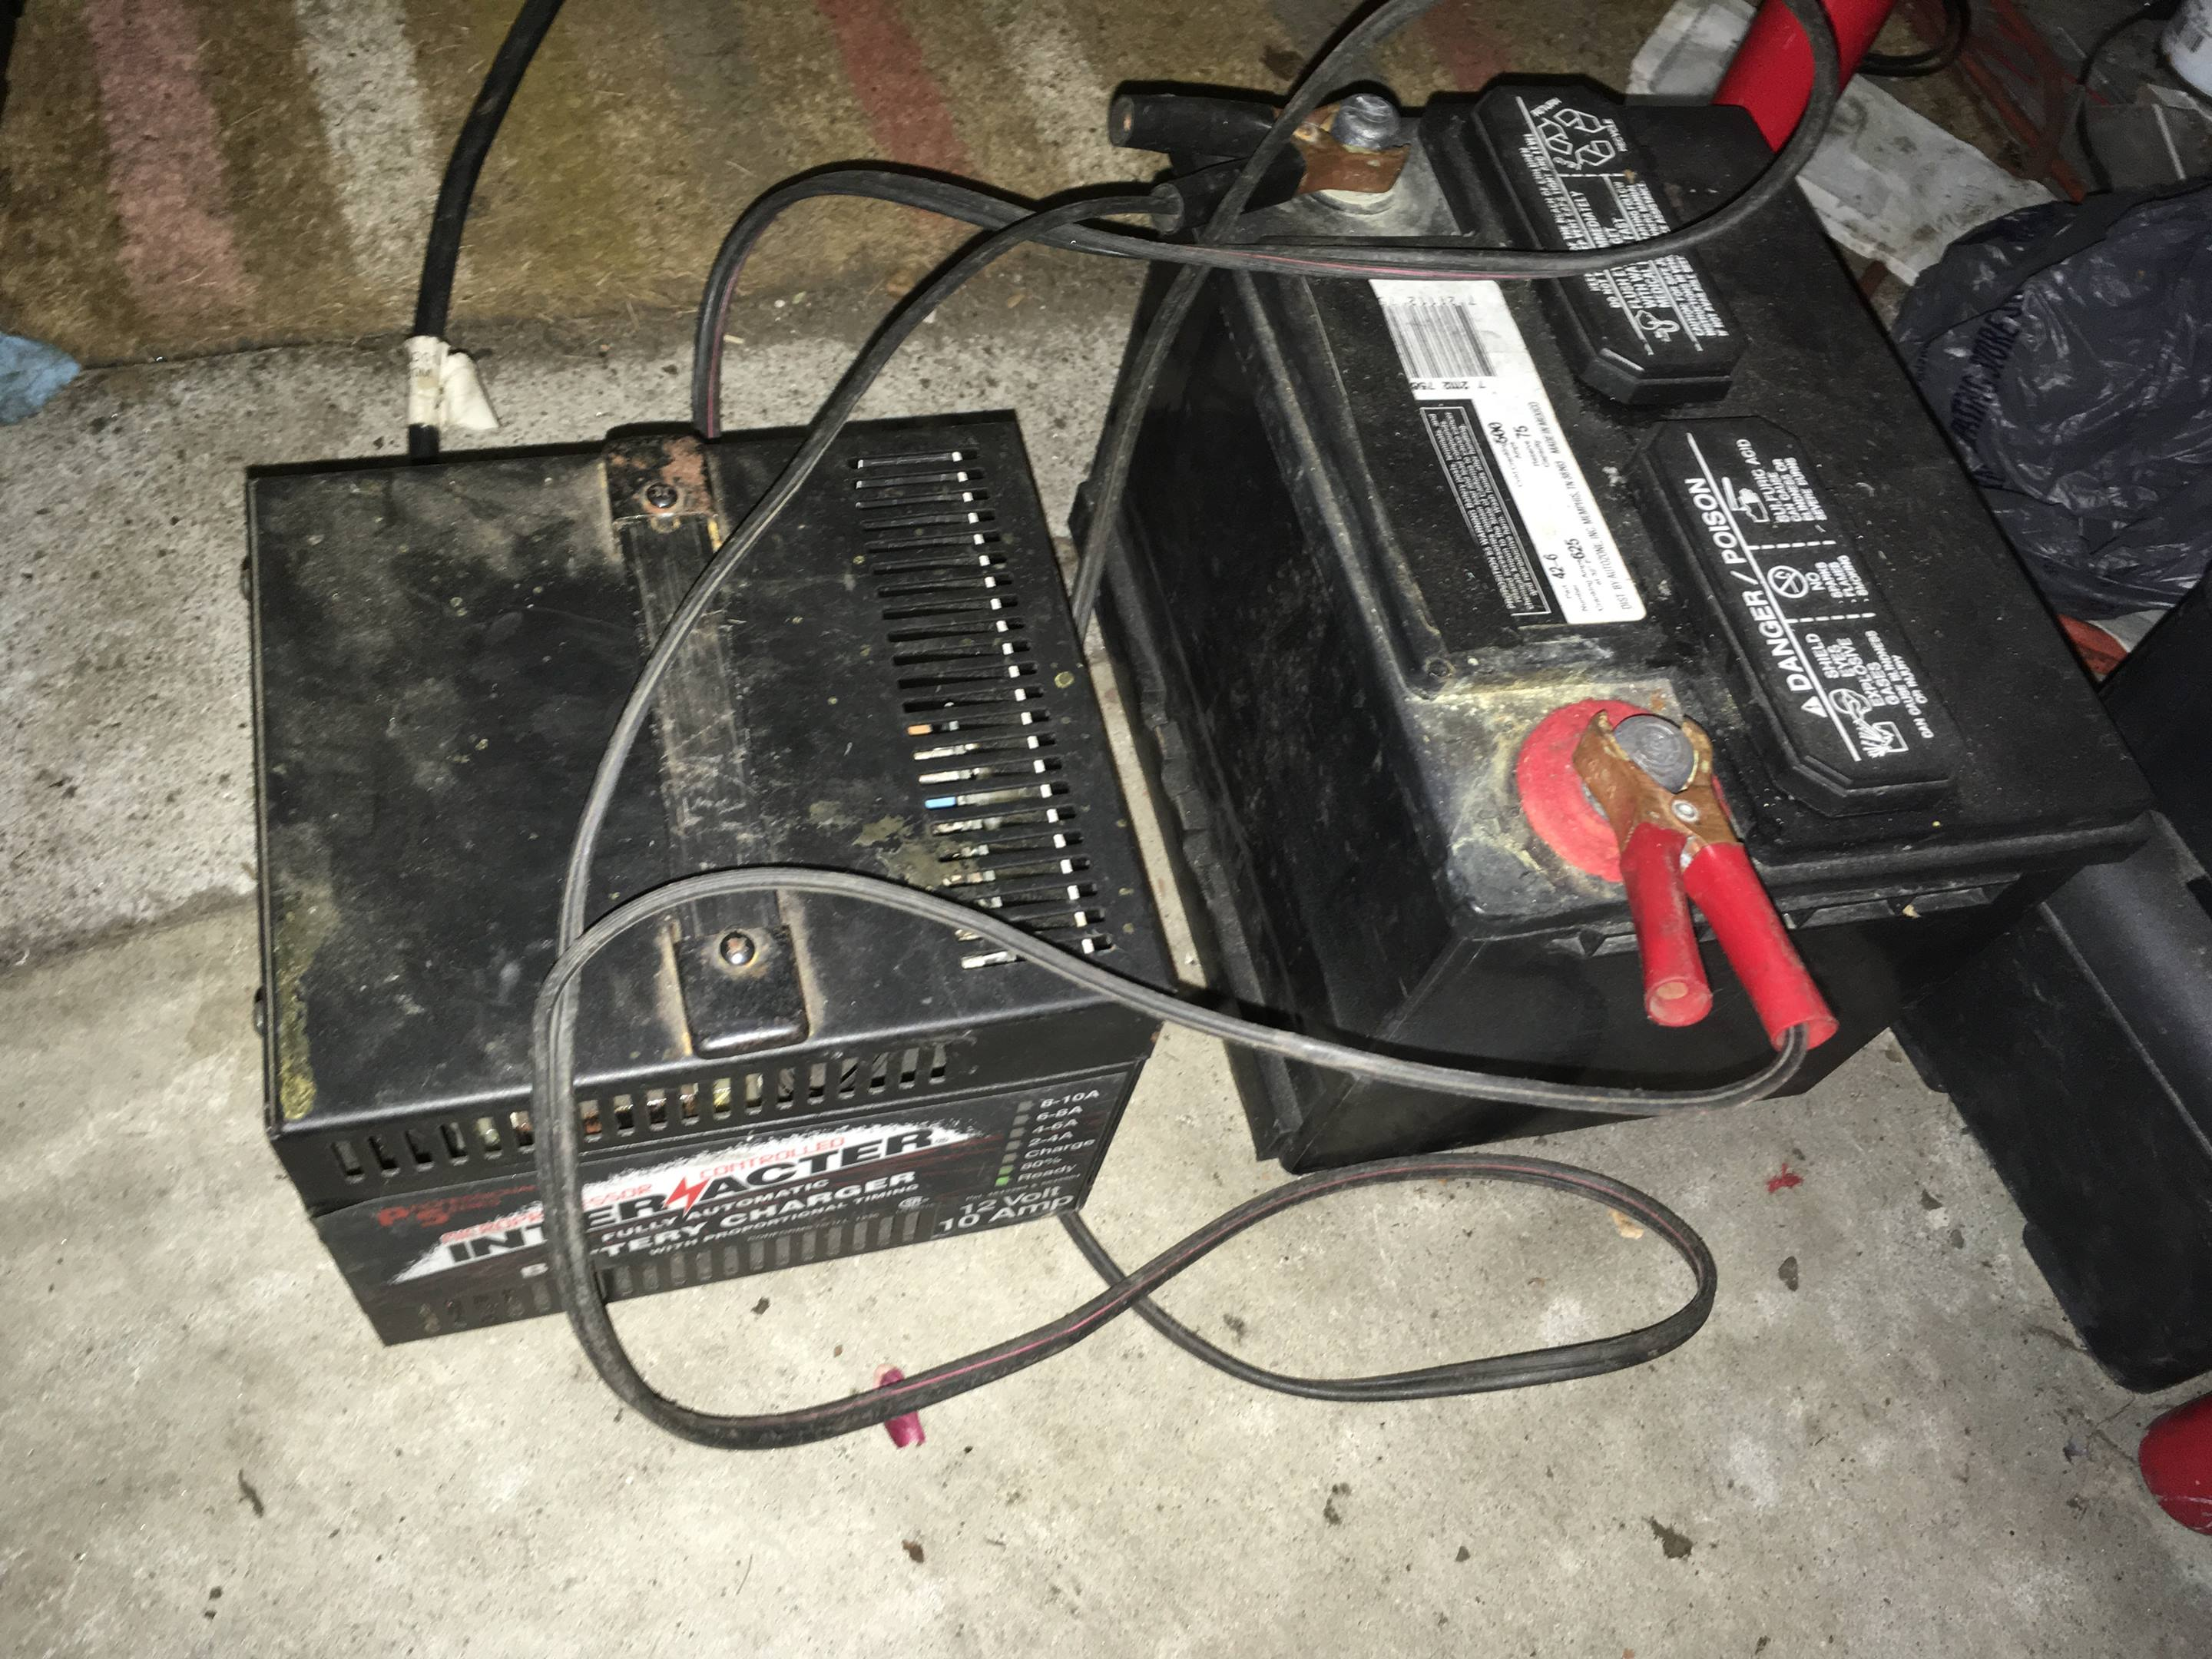 Feel free to leave or charge your battery on the garage floor. Concrete does not discharge the battery; that's a myth.